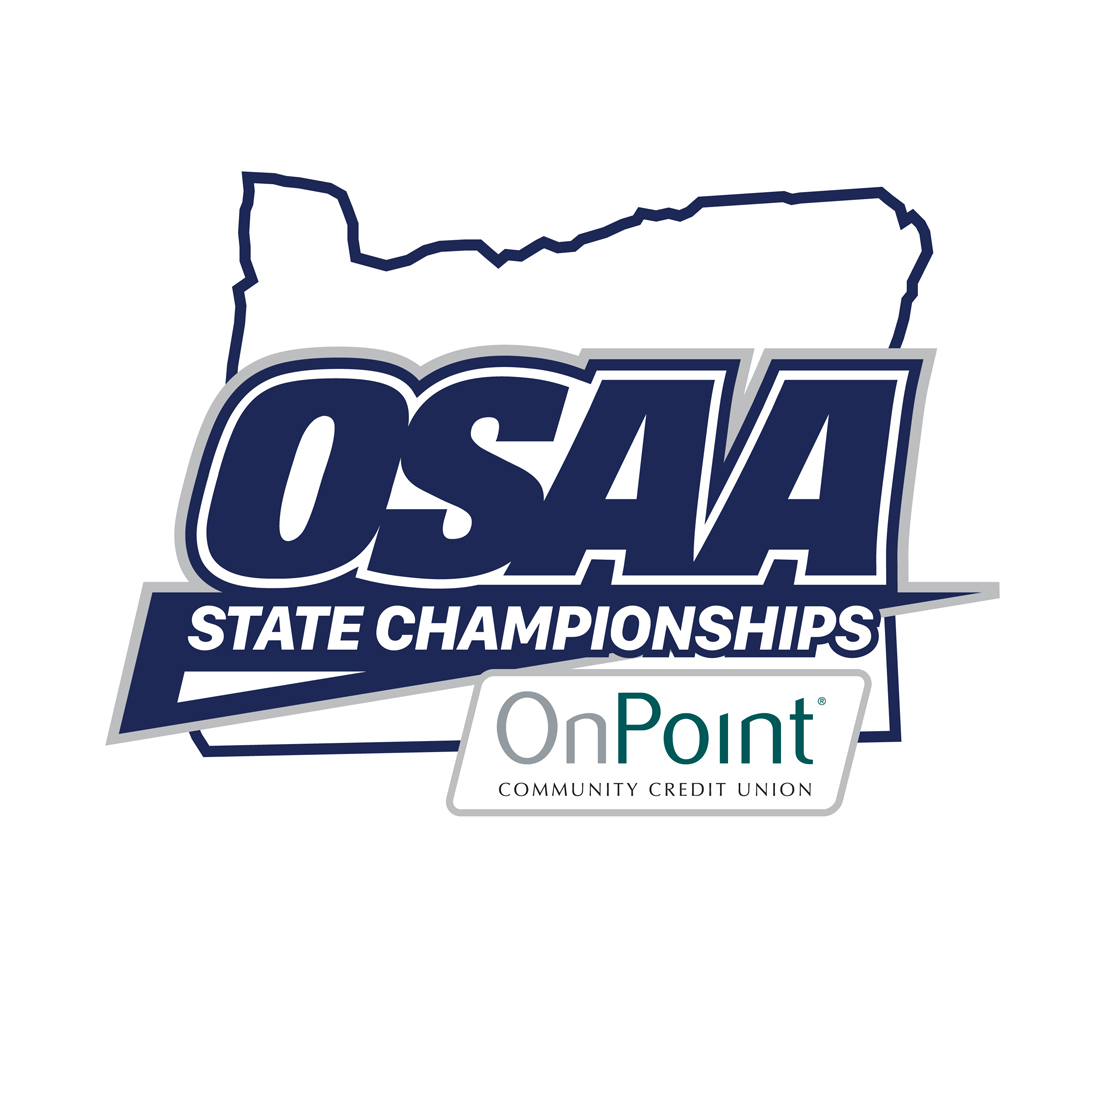 OSAA and OnPoint joint logo